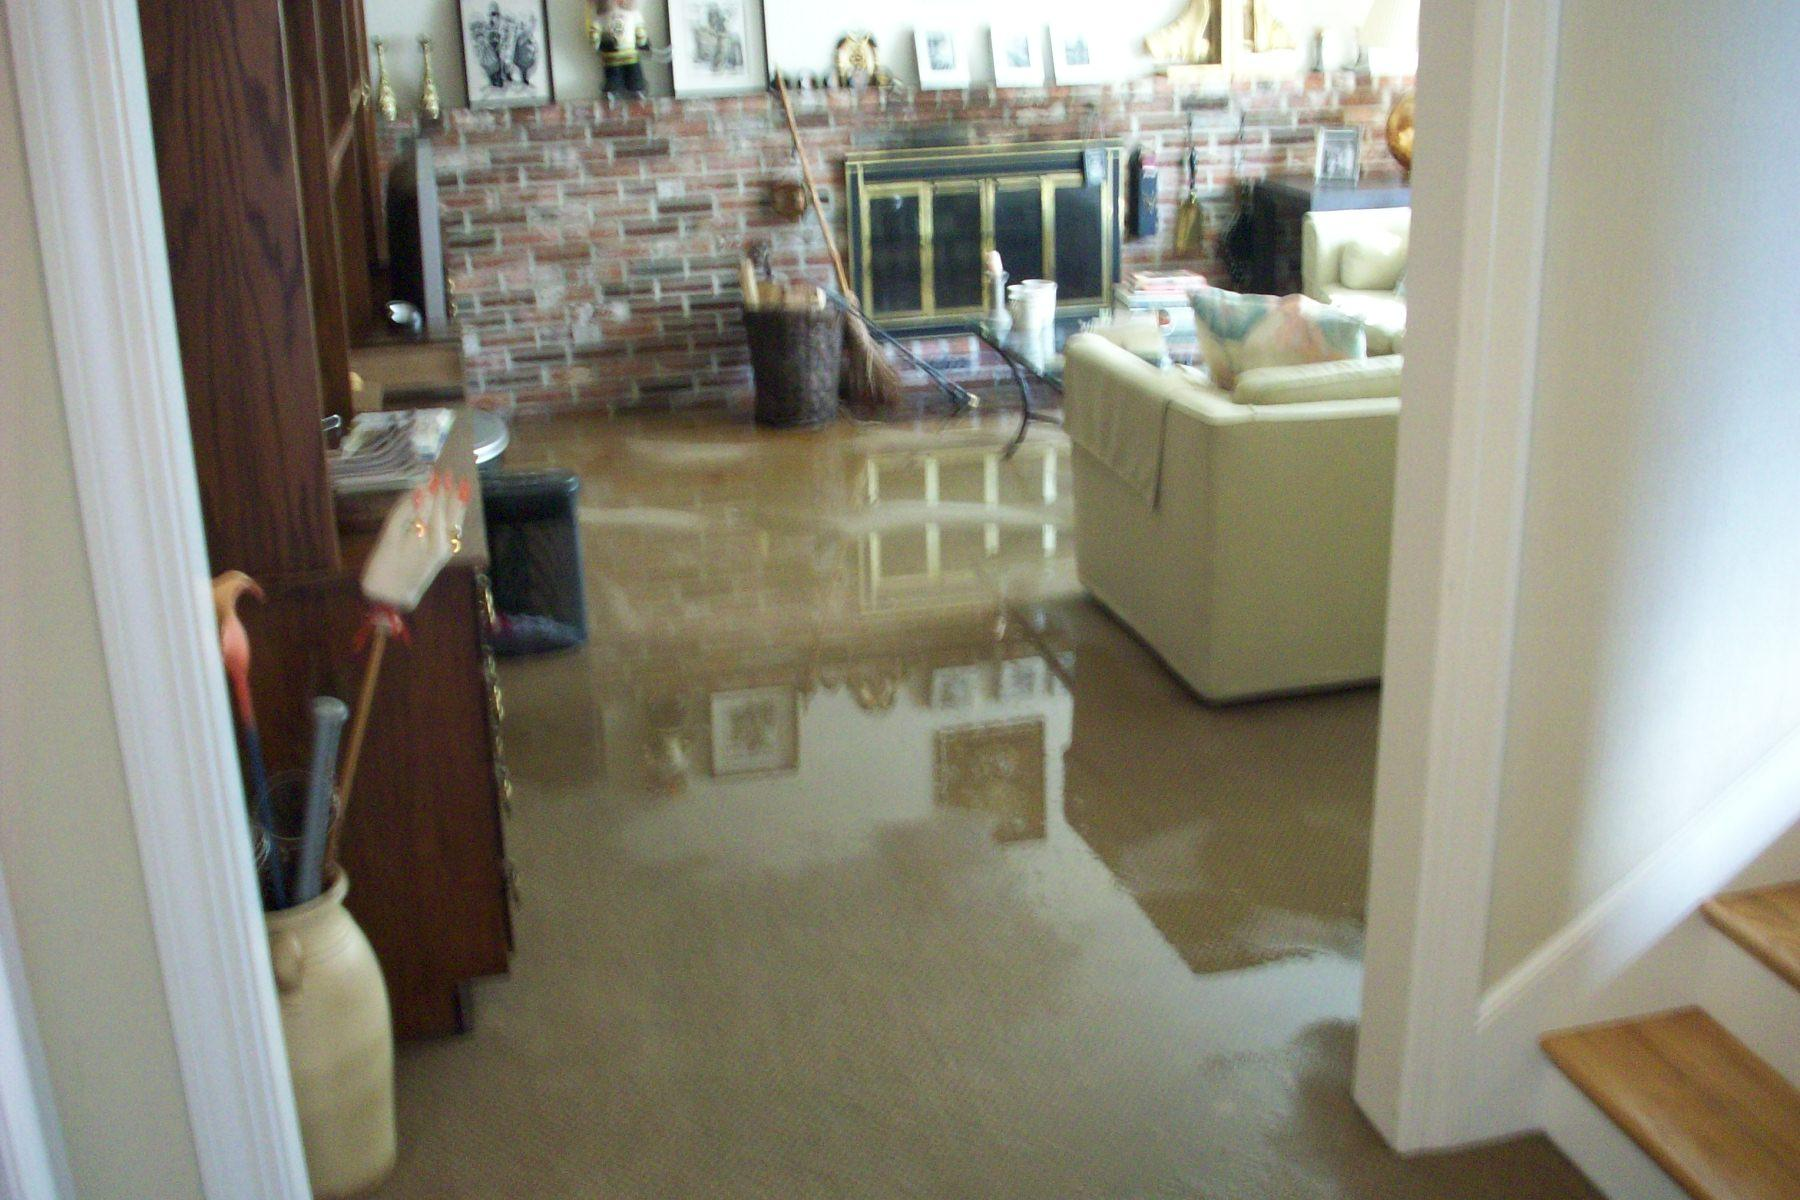 How To Dry A Flooded Basement Yourself - Best flooring for a wet basement